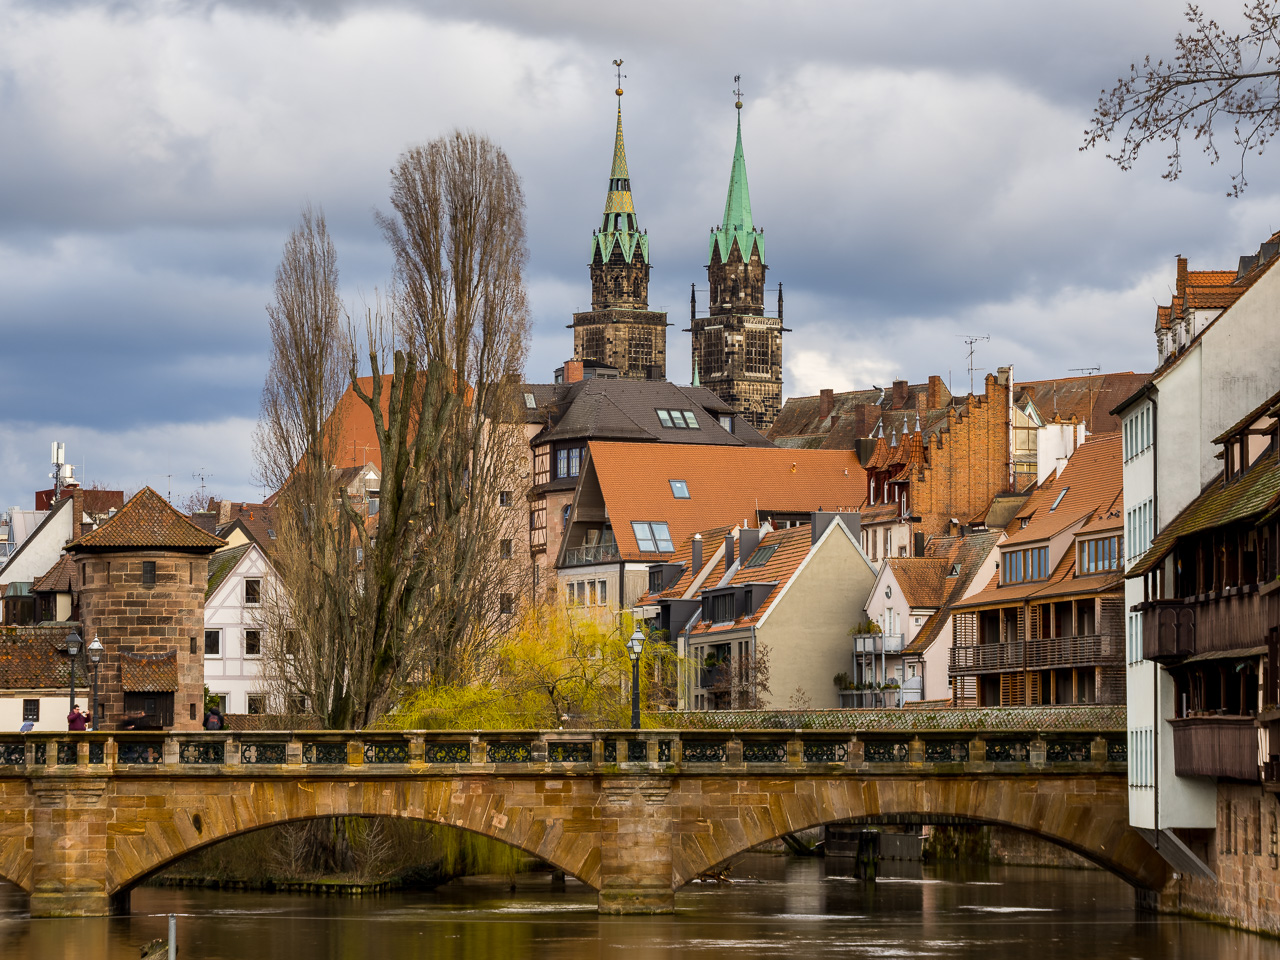 Nuremberg Old Town and Pegnitz River